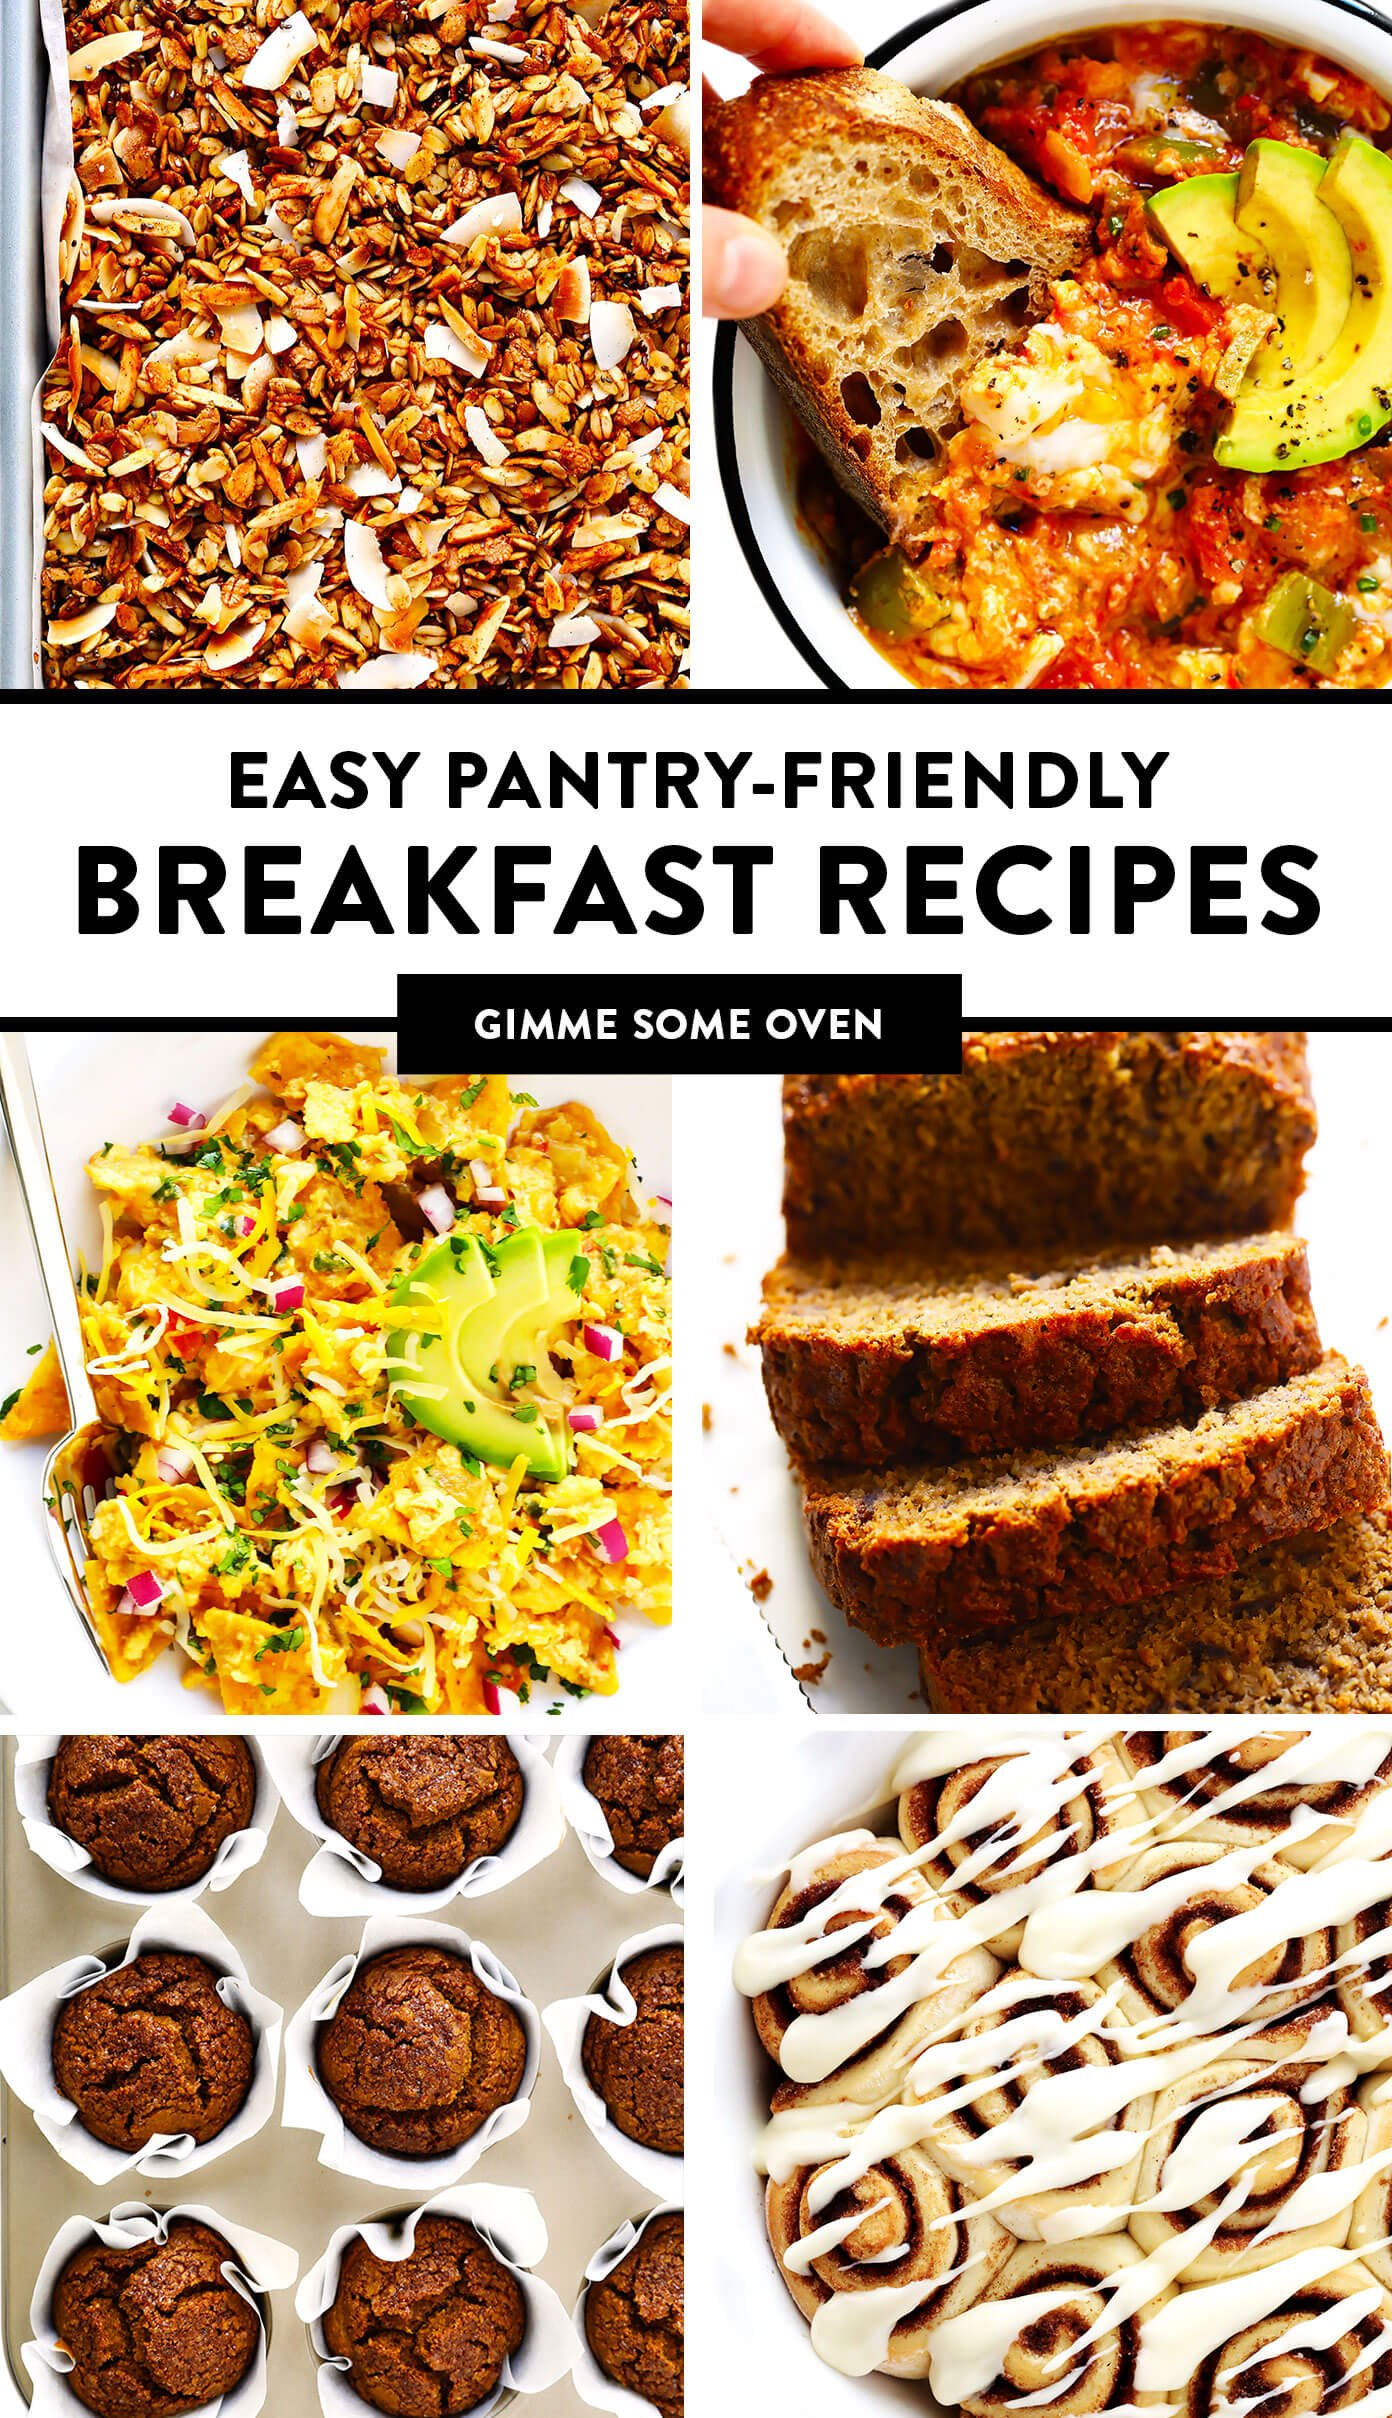 Easy Pantry-Friendly Breakfast Recipes